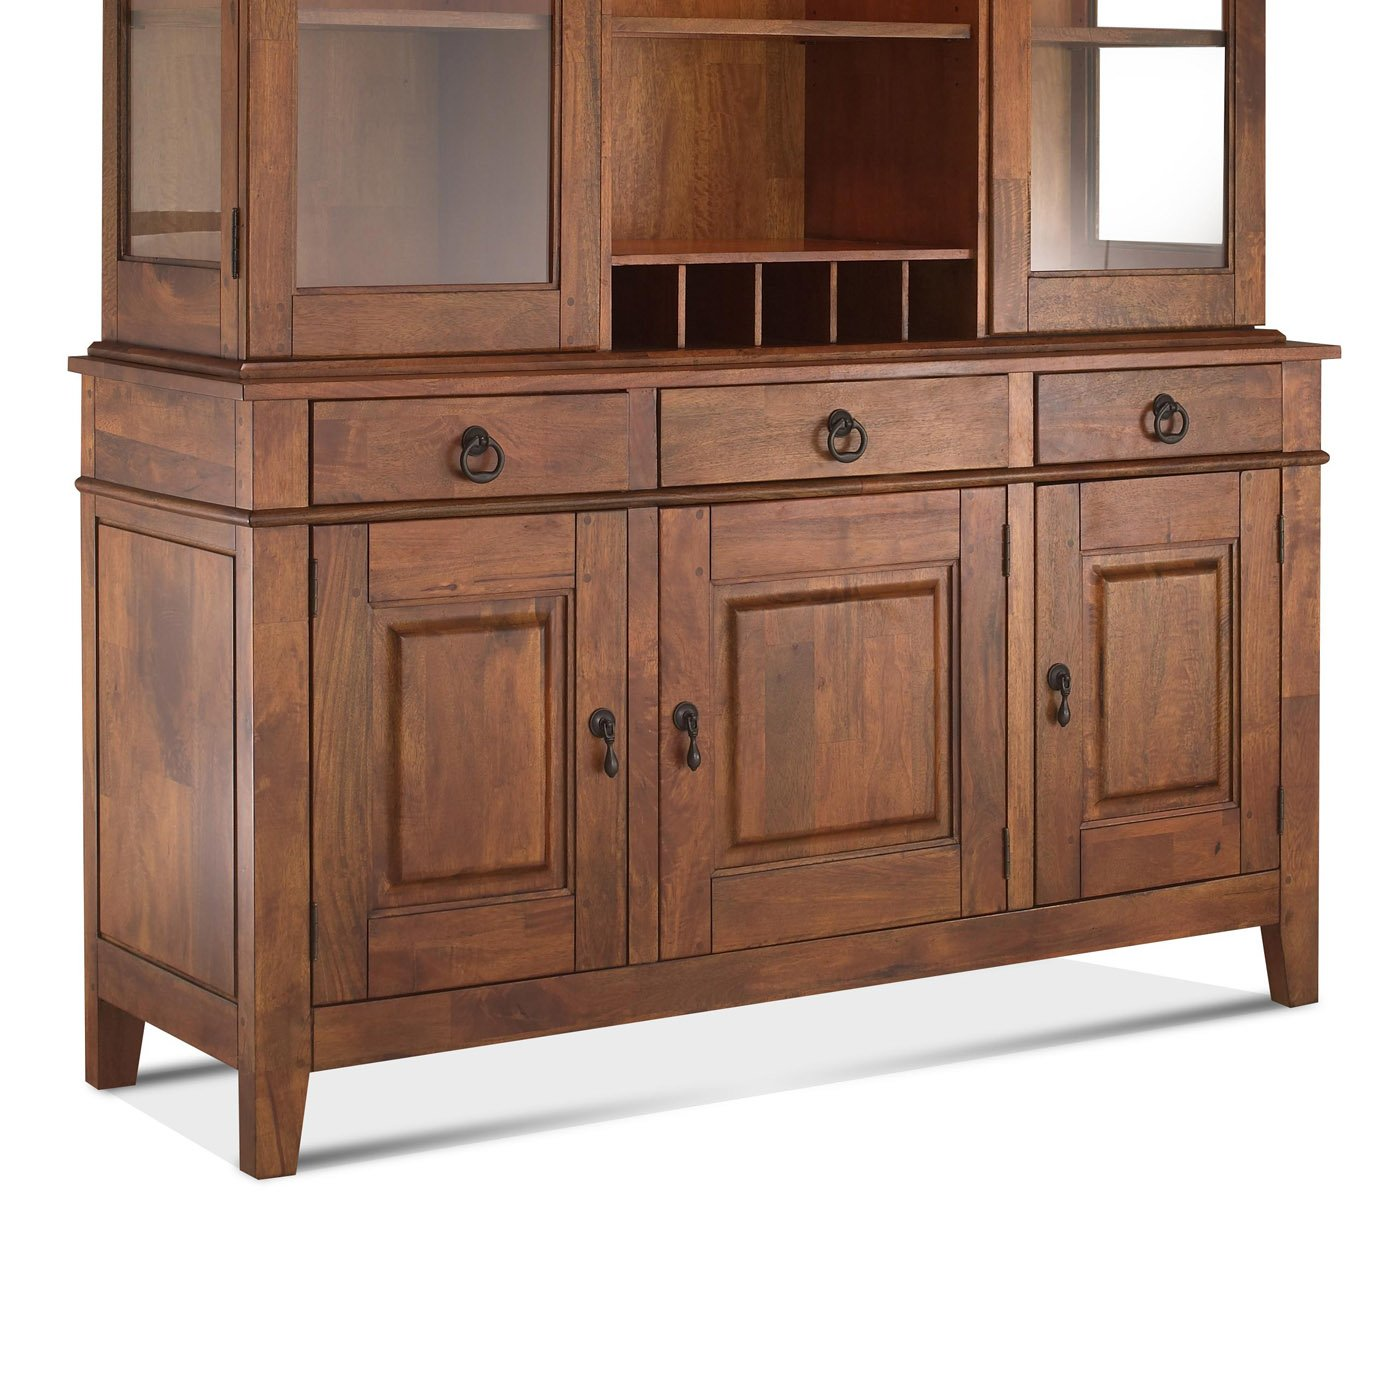 Charming sideboards and buffets for home furniture with antique sideboards and buffets